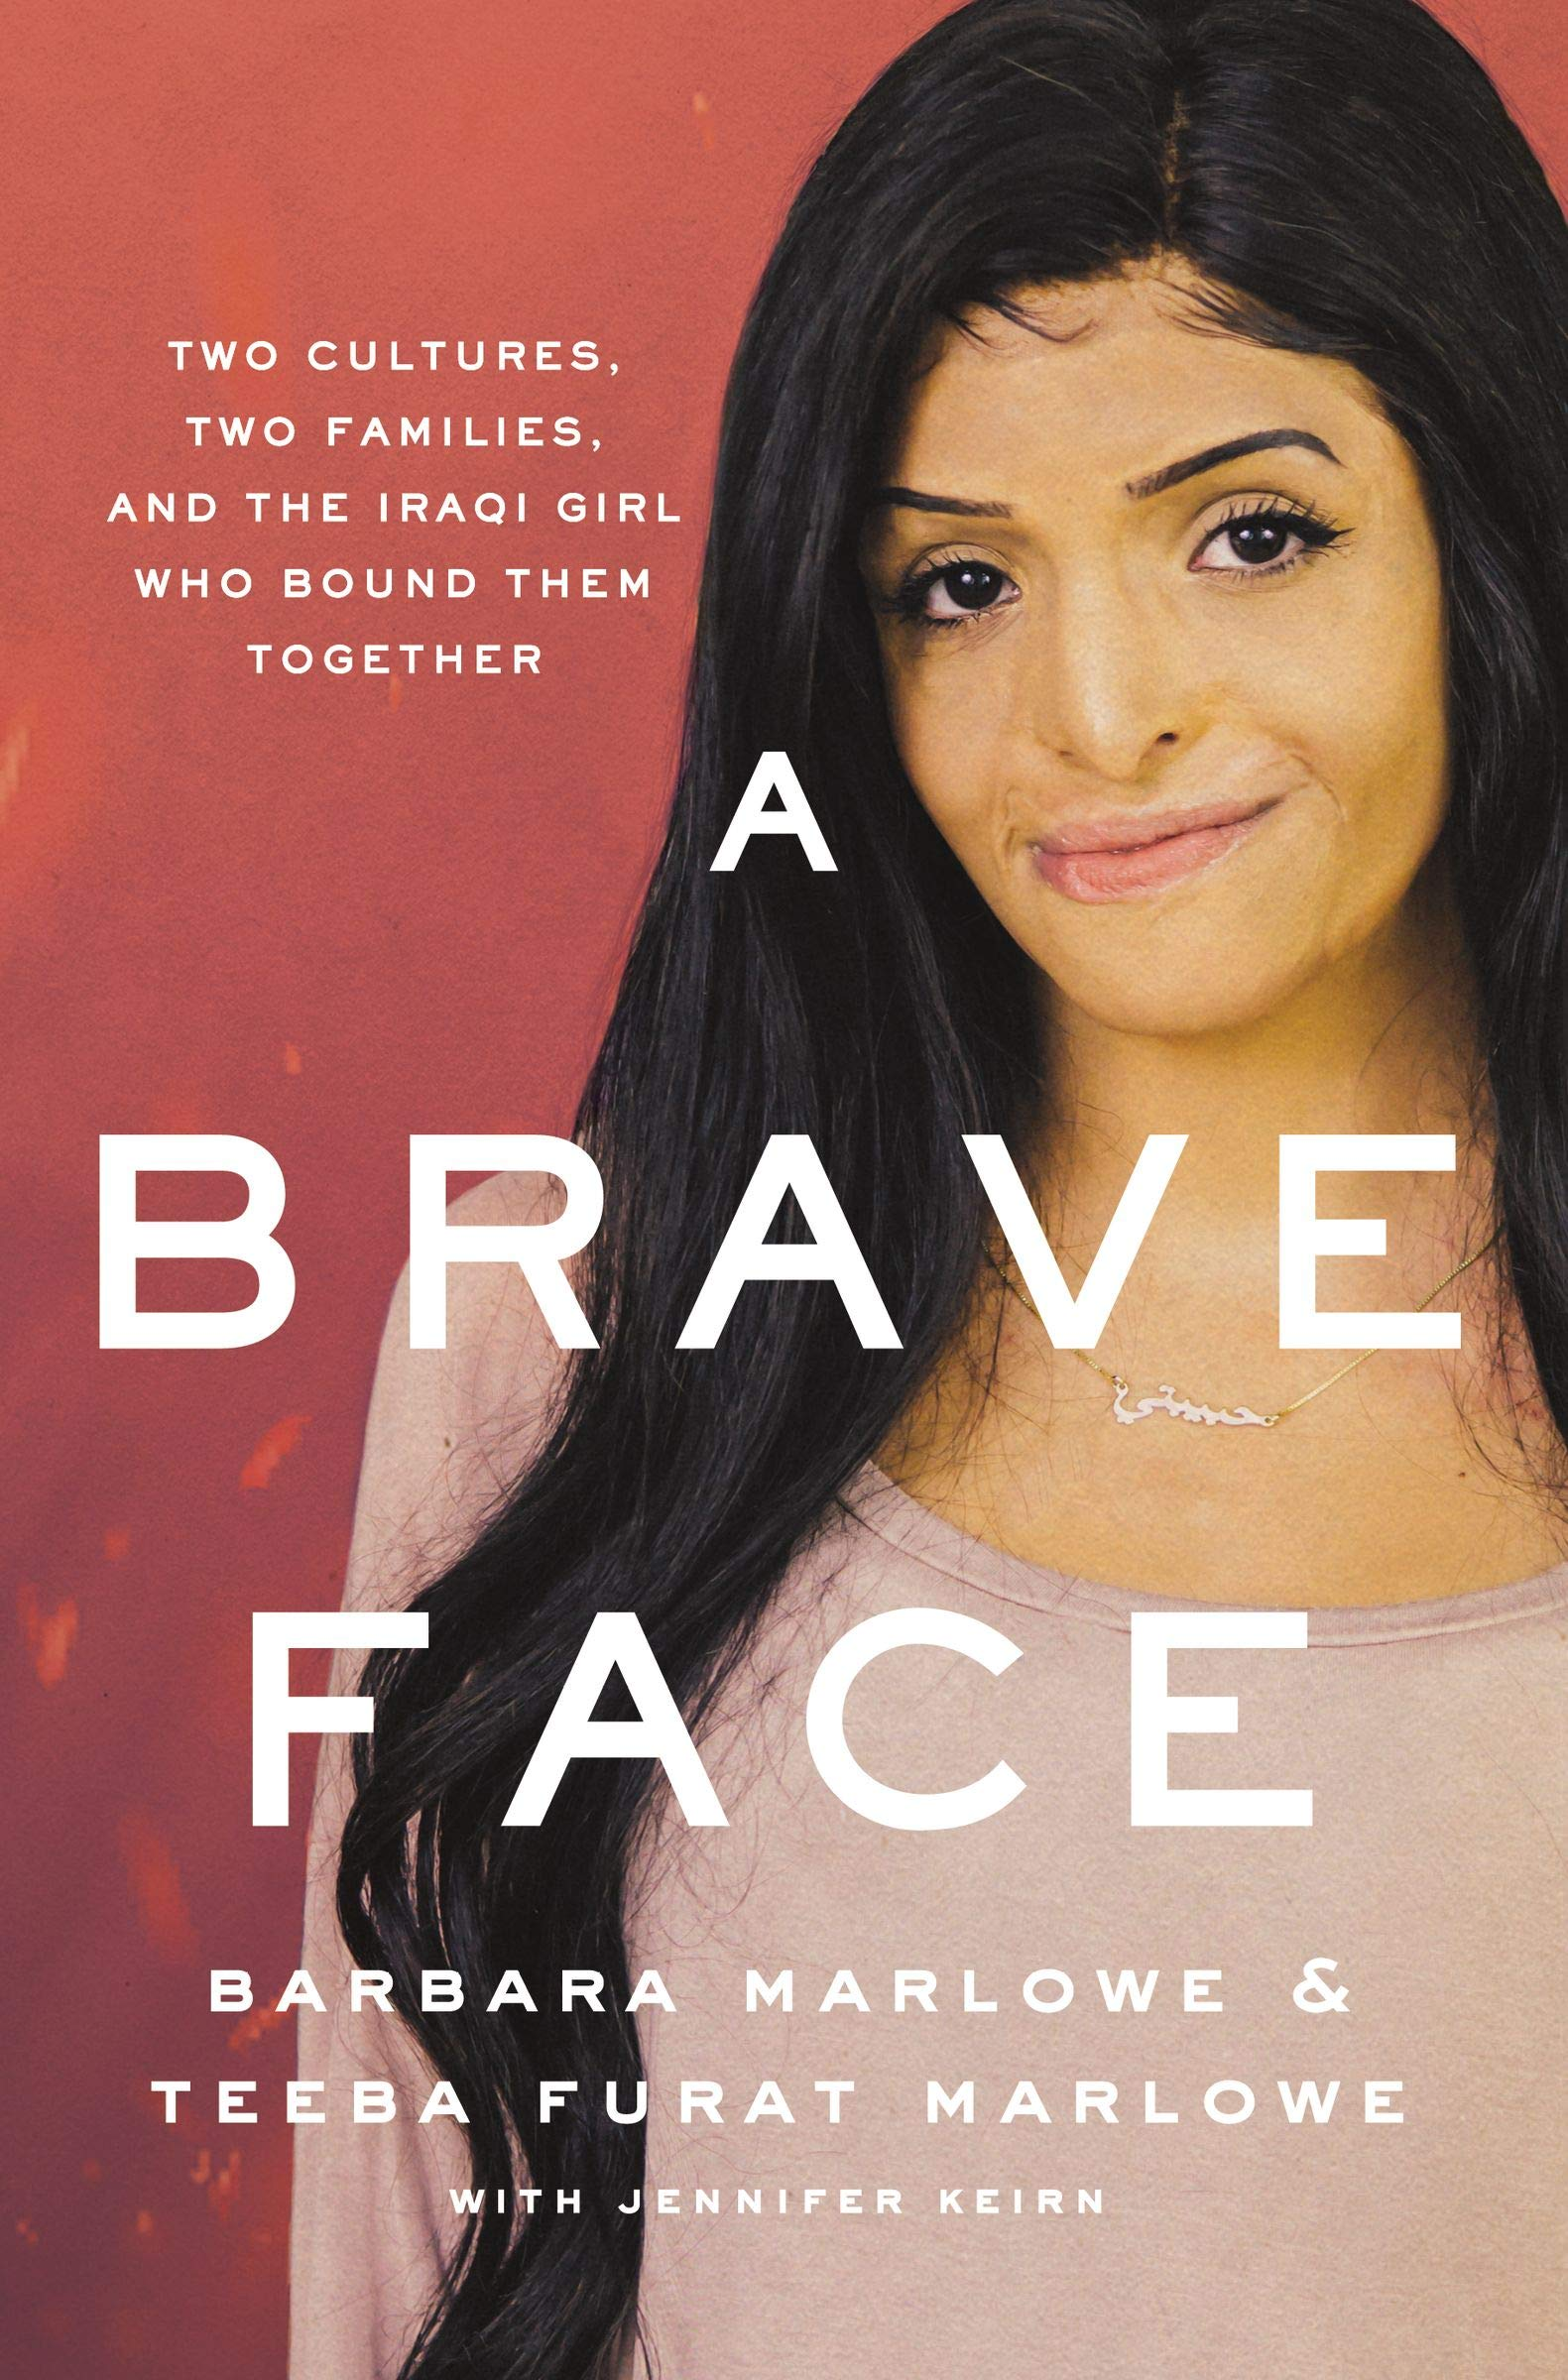 Brave Face Cultures Families Together